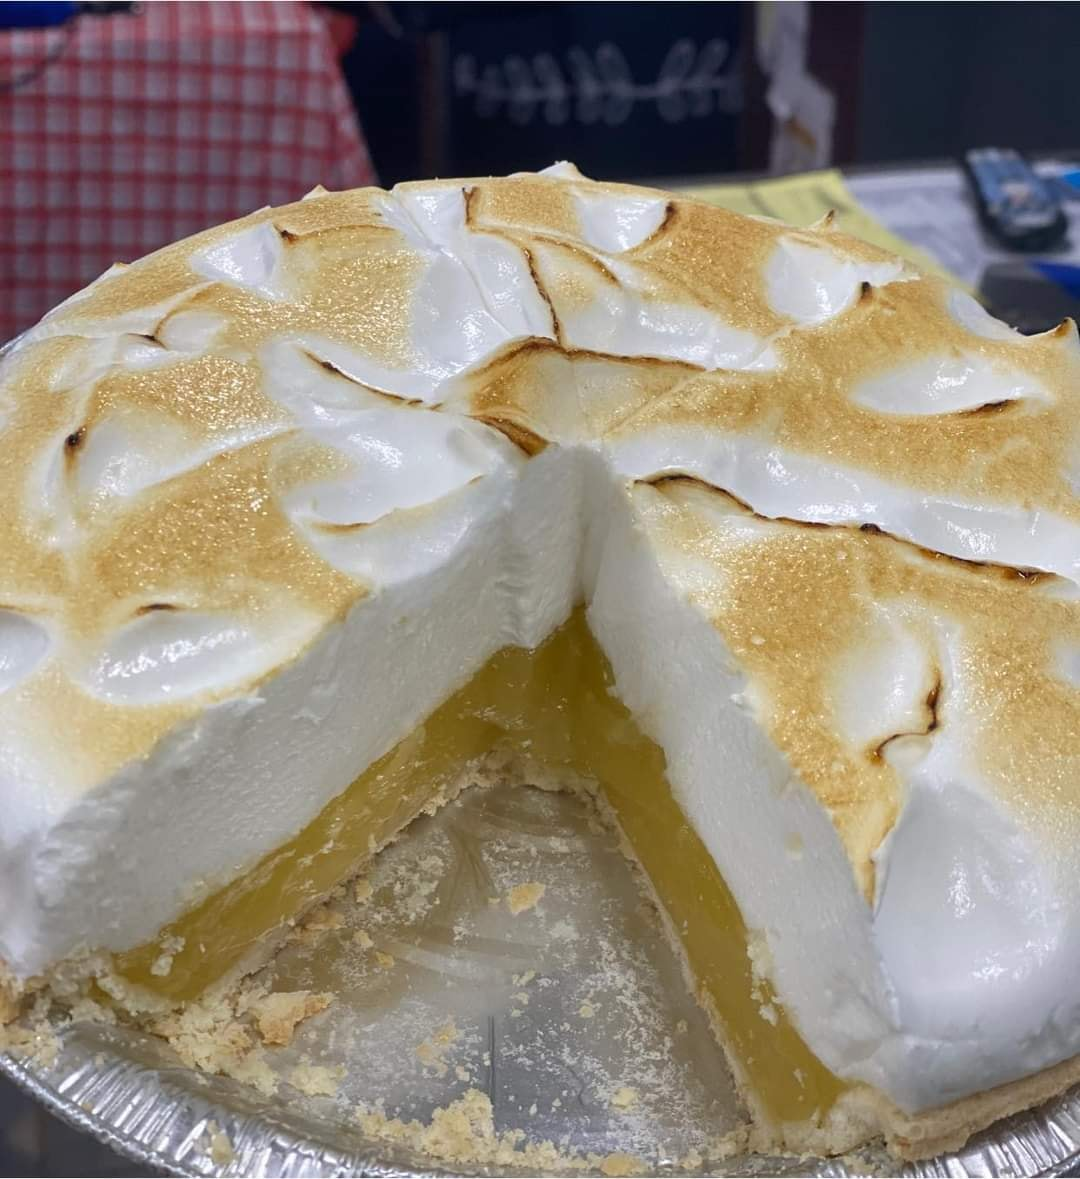 a cake with whipped cream and yellow filling